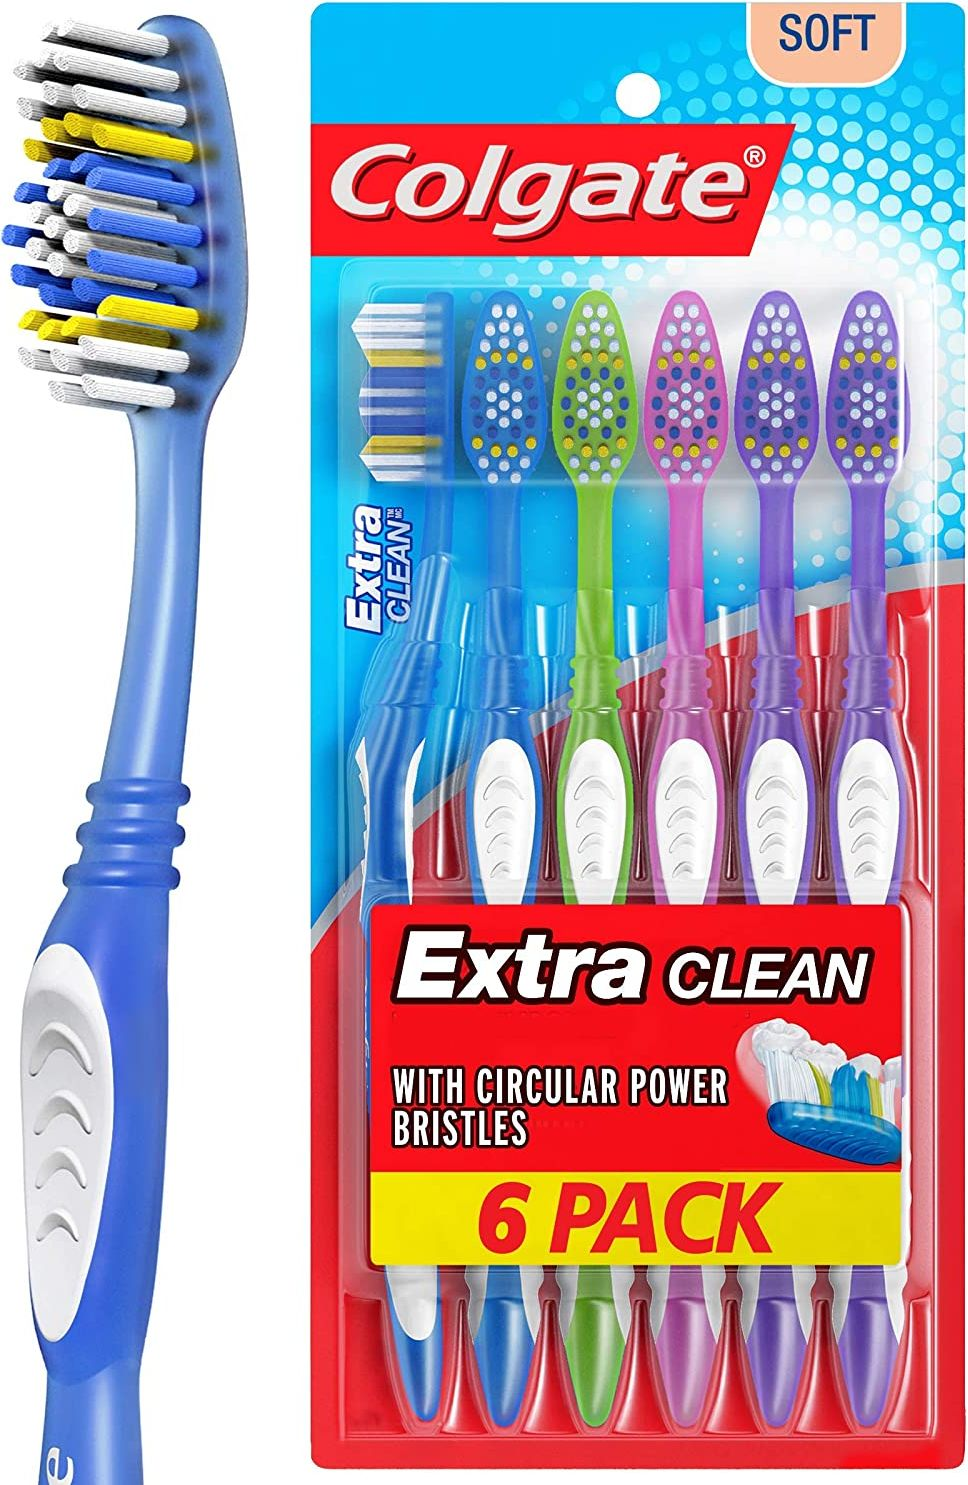 Colgate Extra Clean Toothbrush 6-Pack $2.60 at Amazon